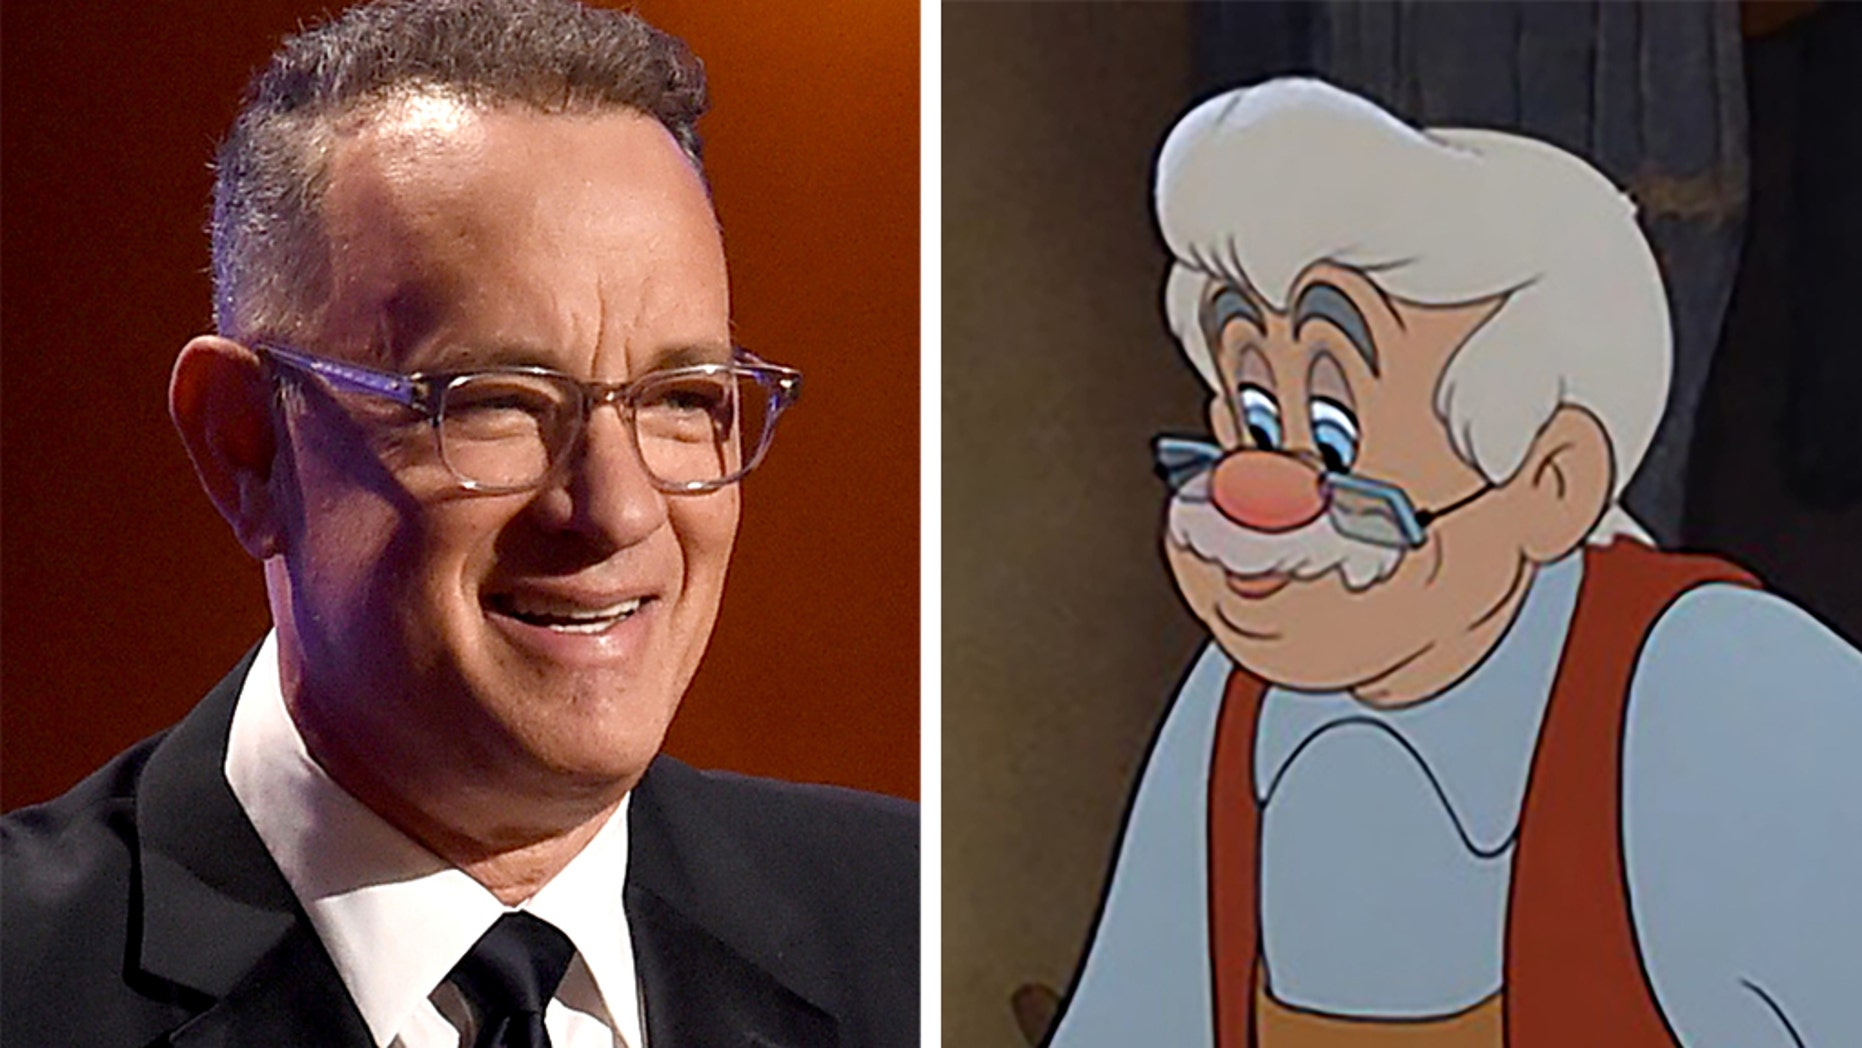 Tom Hanks is reportedly in early talks to play Geppetto in Disney's live-action 'Pinocchio' movie.